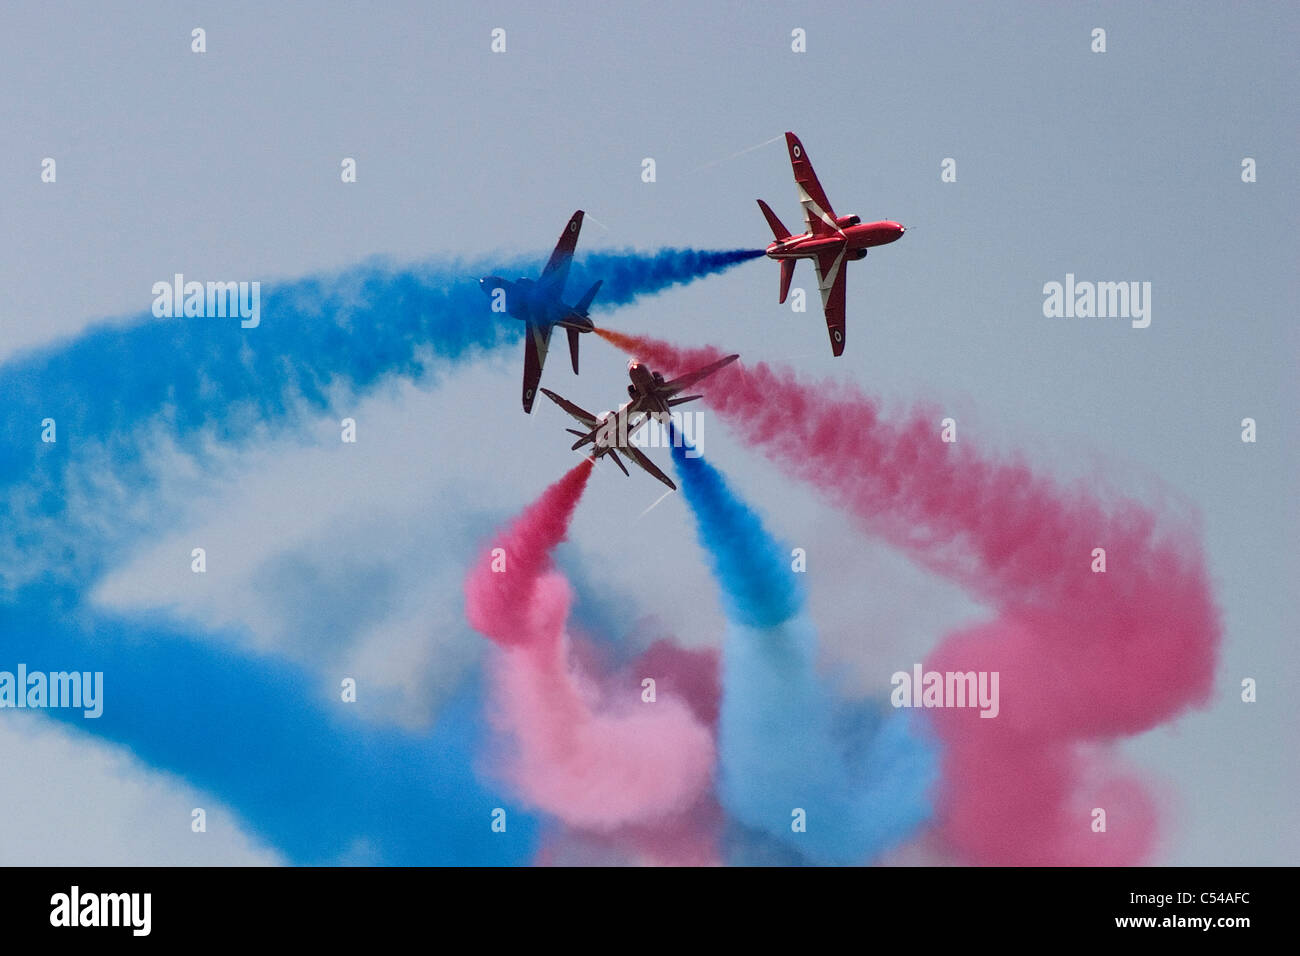 The Red Arrows display team at the Goodwood Festival of speed, 2011 - Stock Image